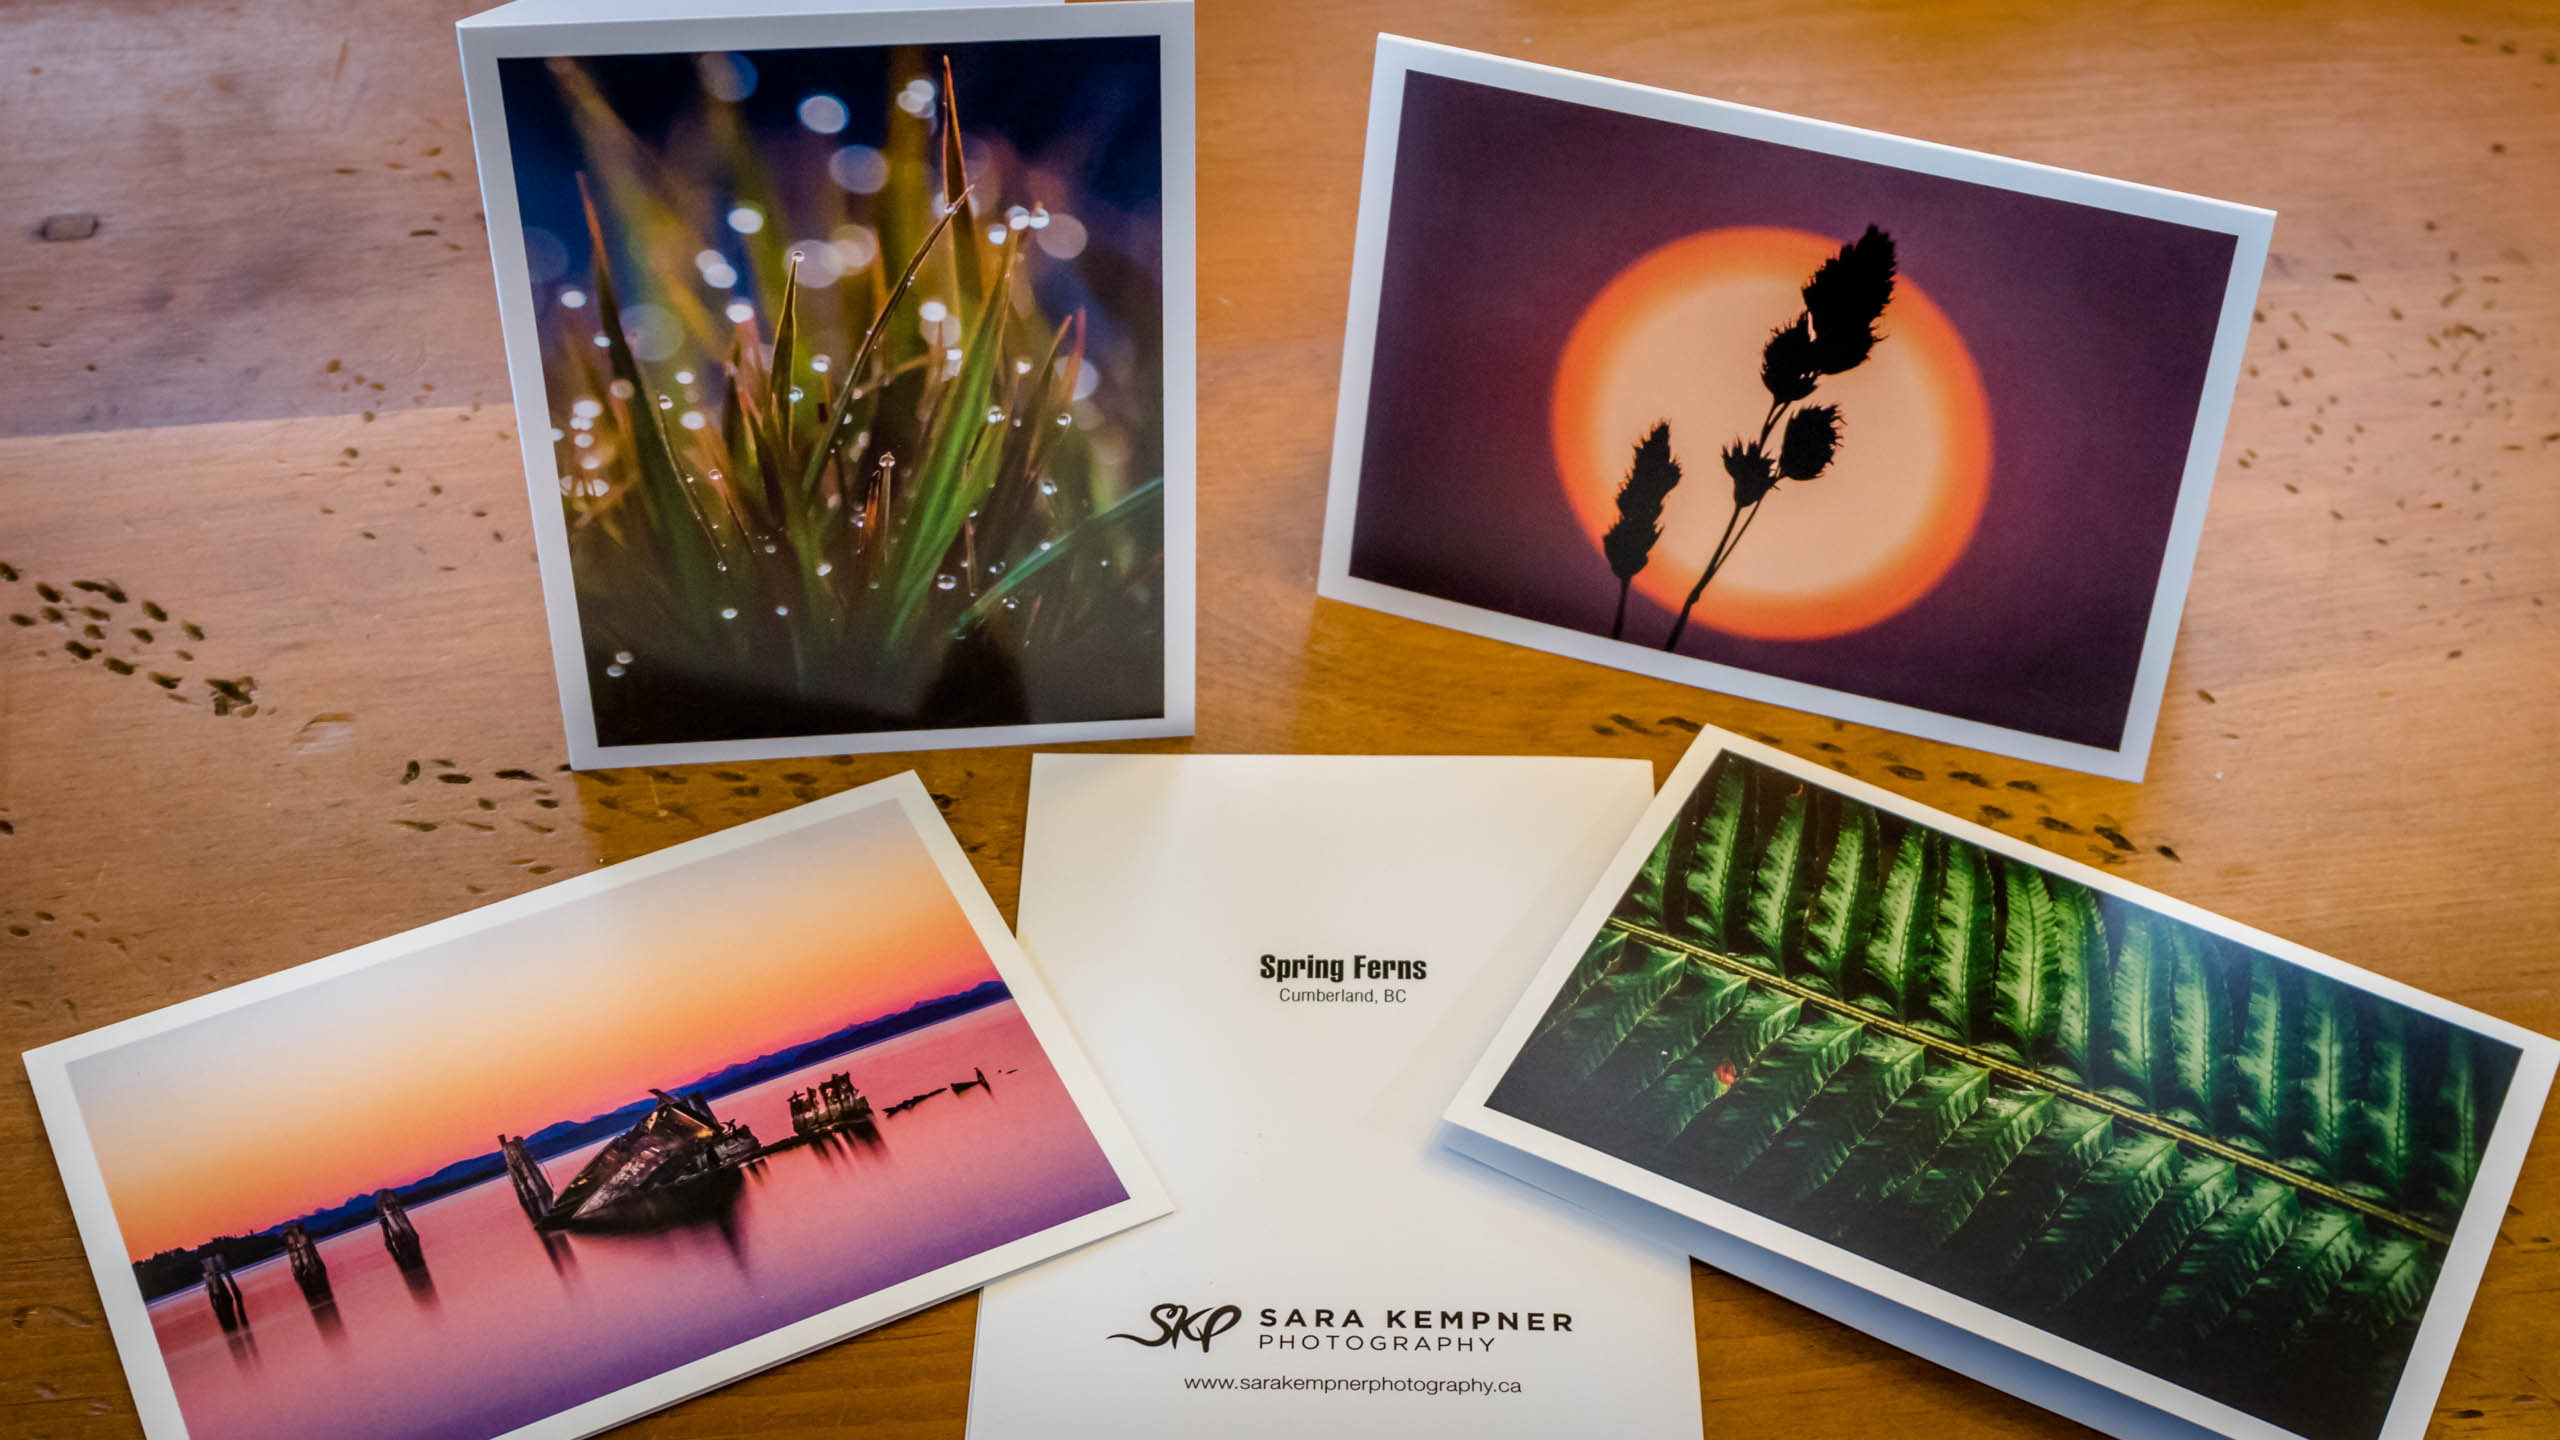 Three reasons to turn your images into greeting cards | Photofocus